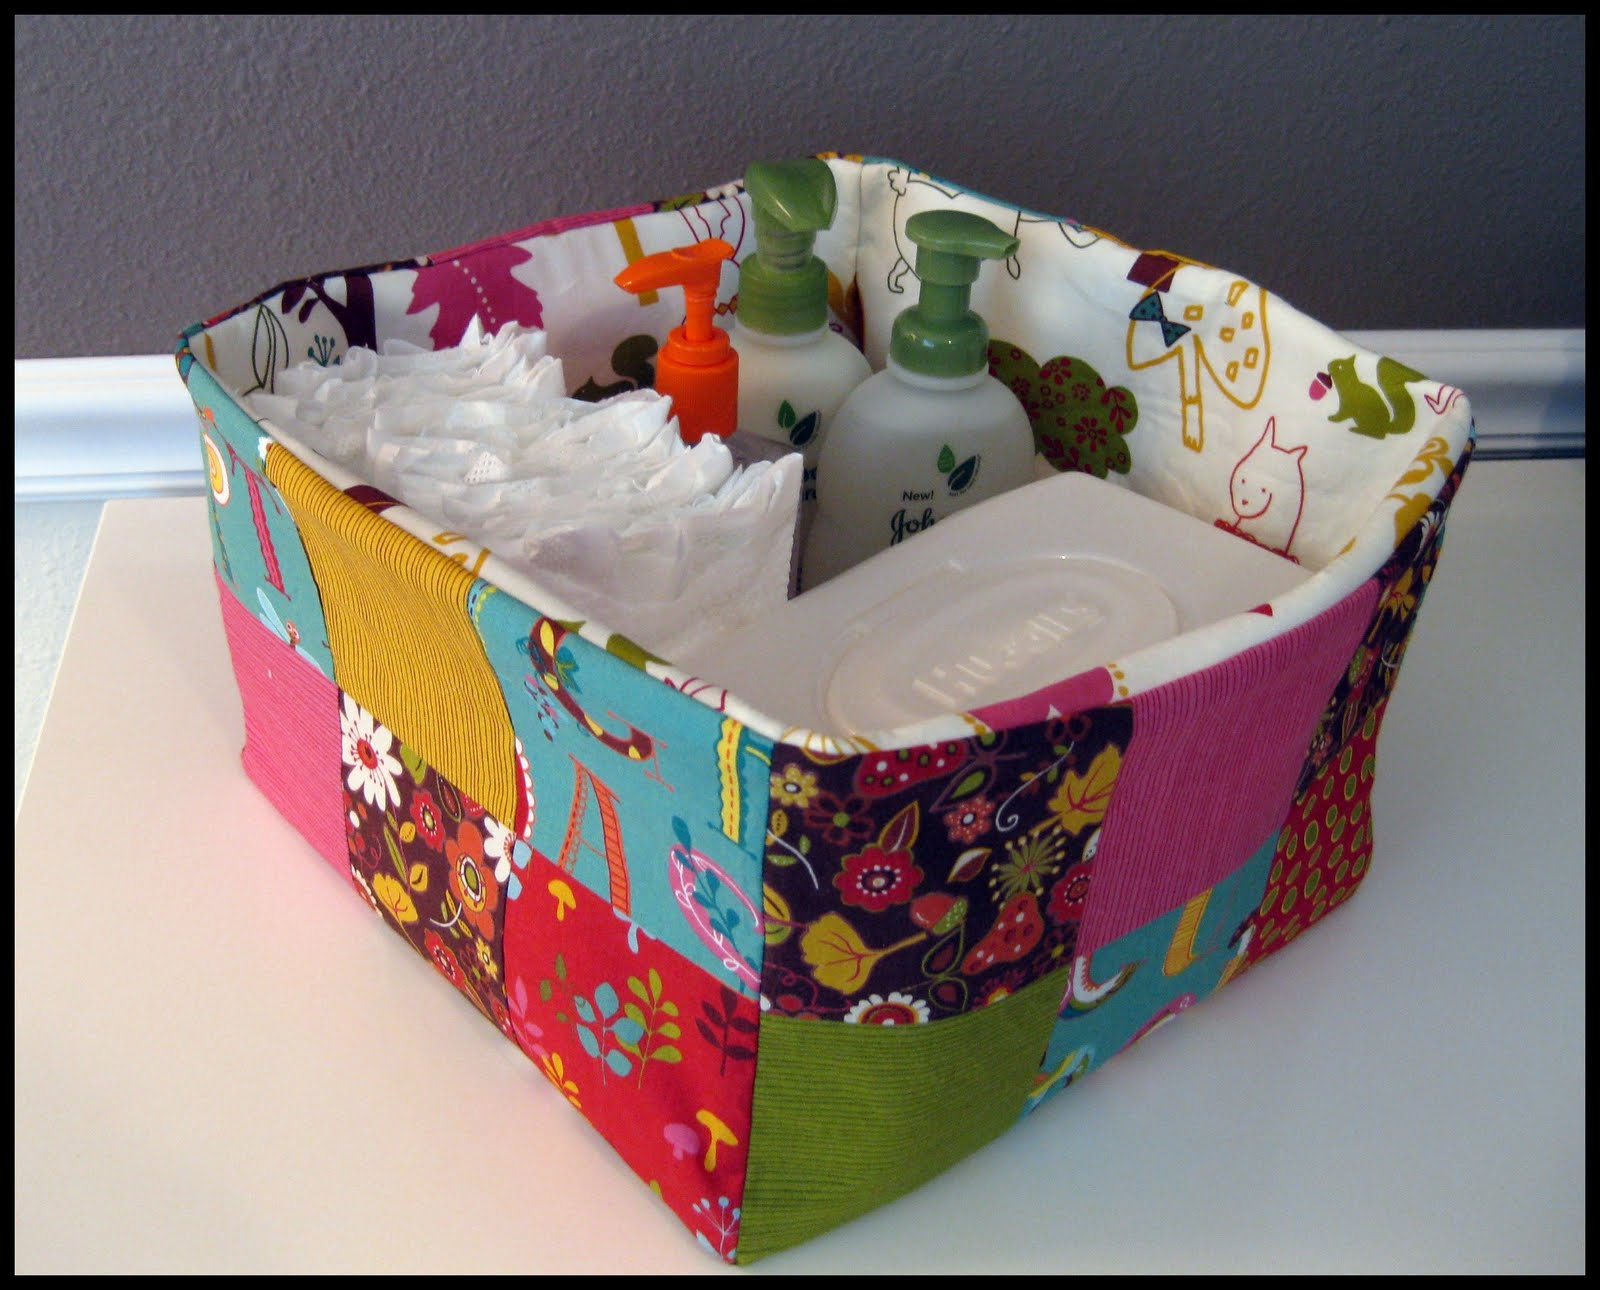 Candace's Calling: A Quick and Easy Fabric Basket!